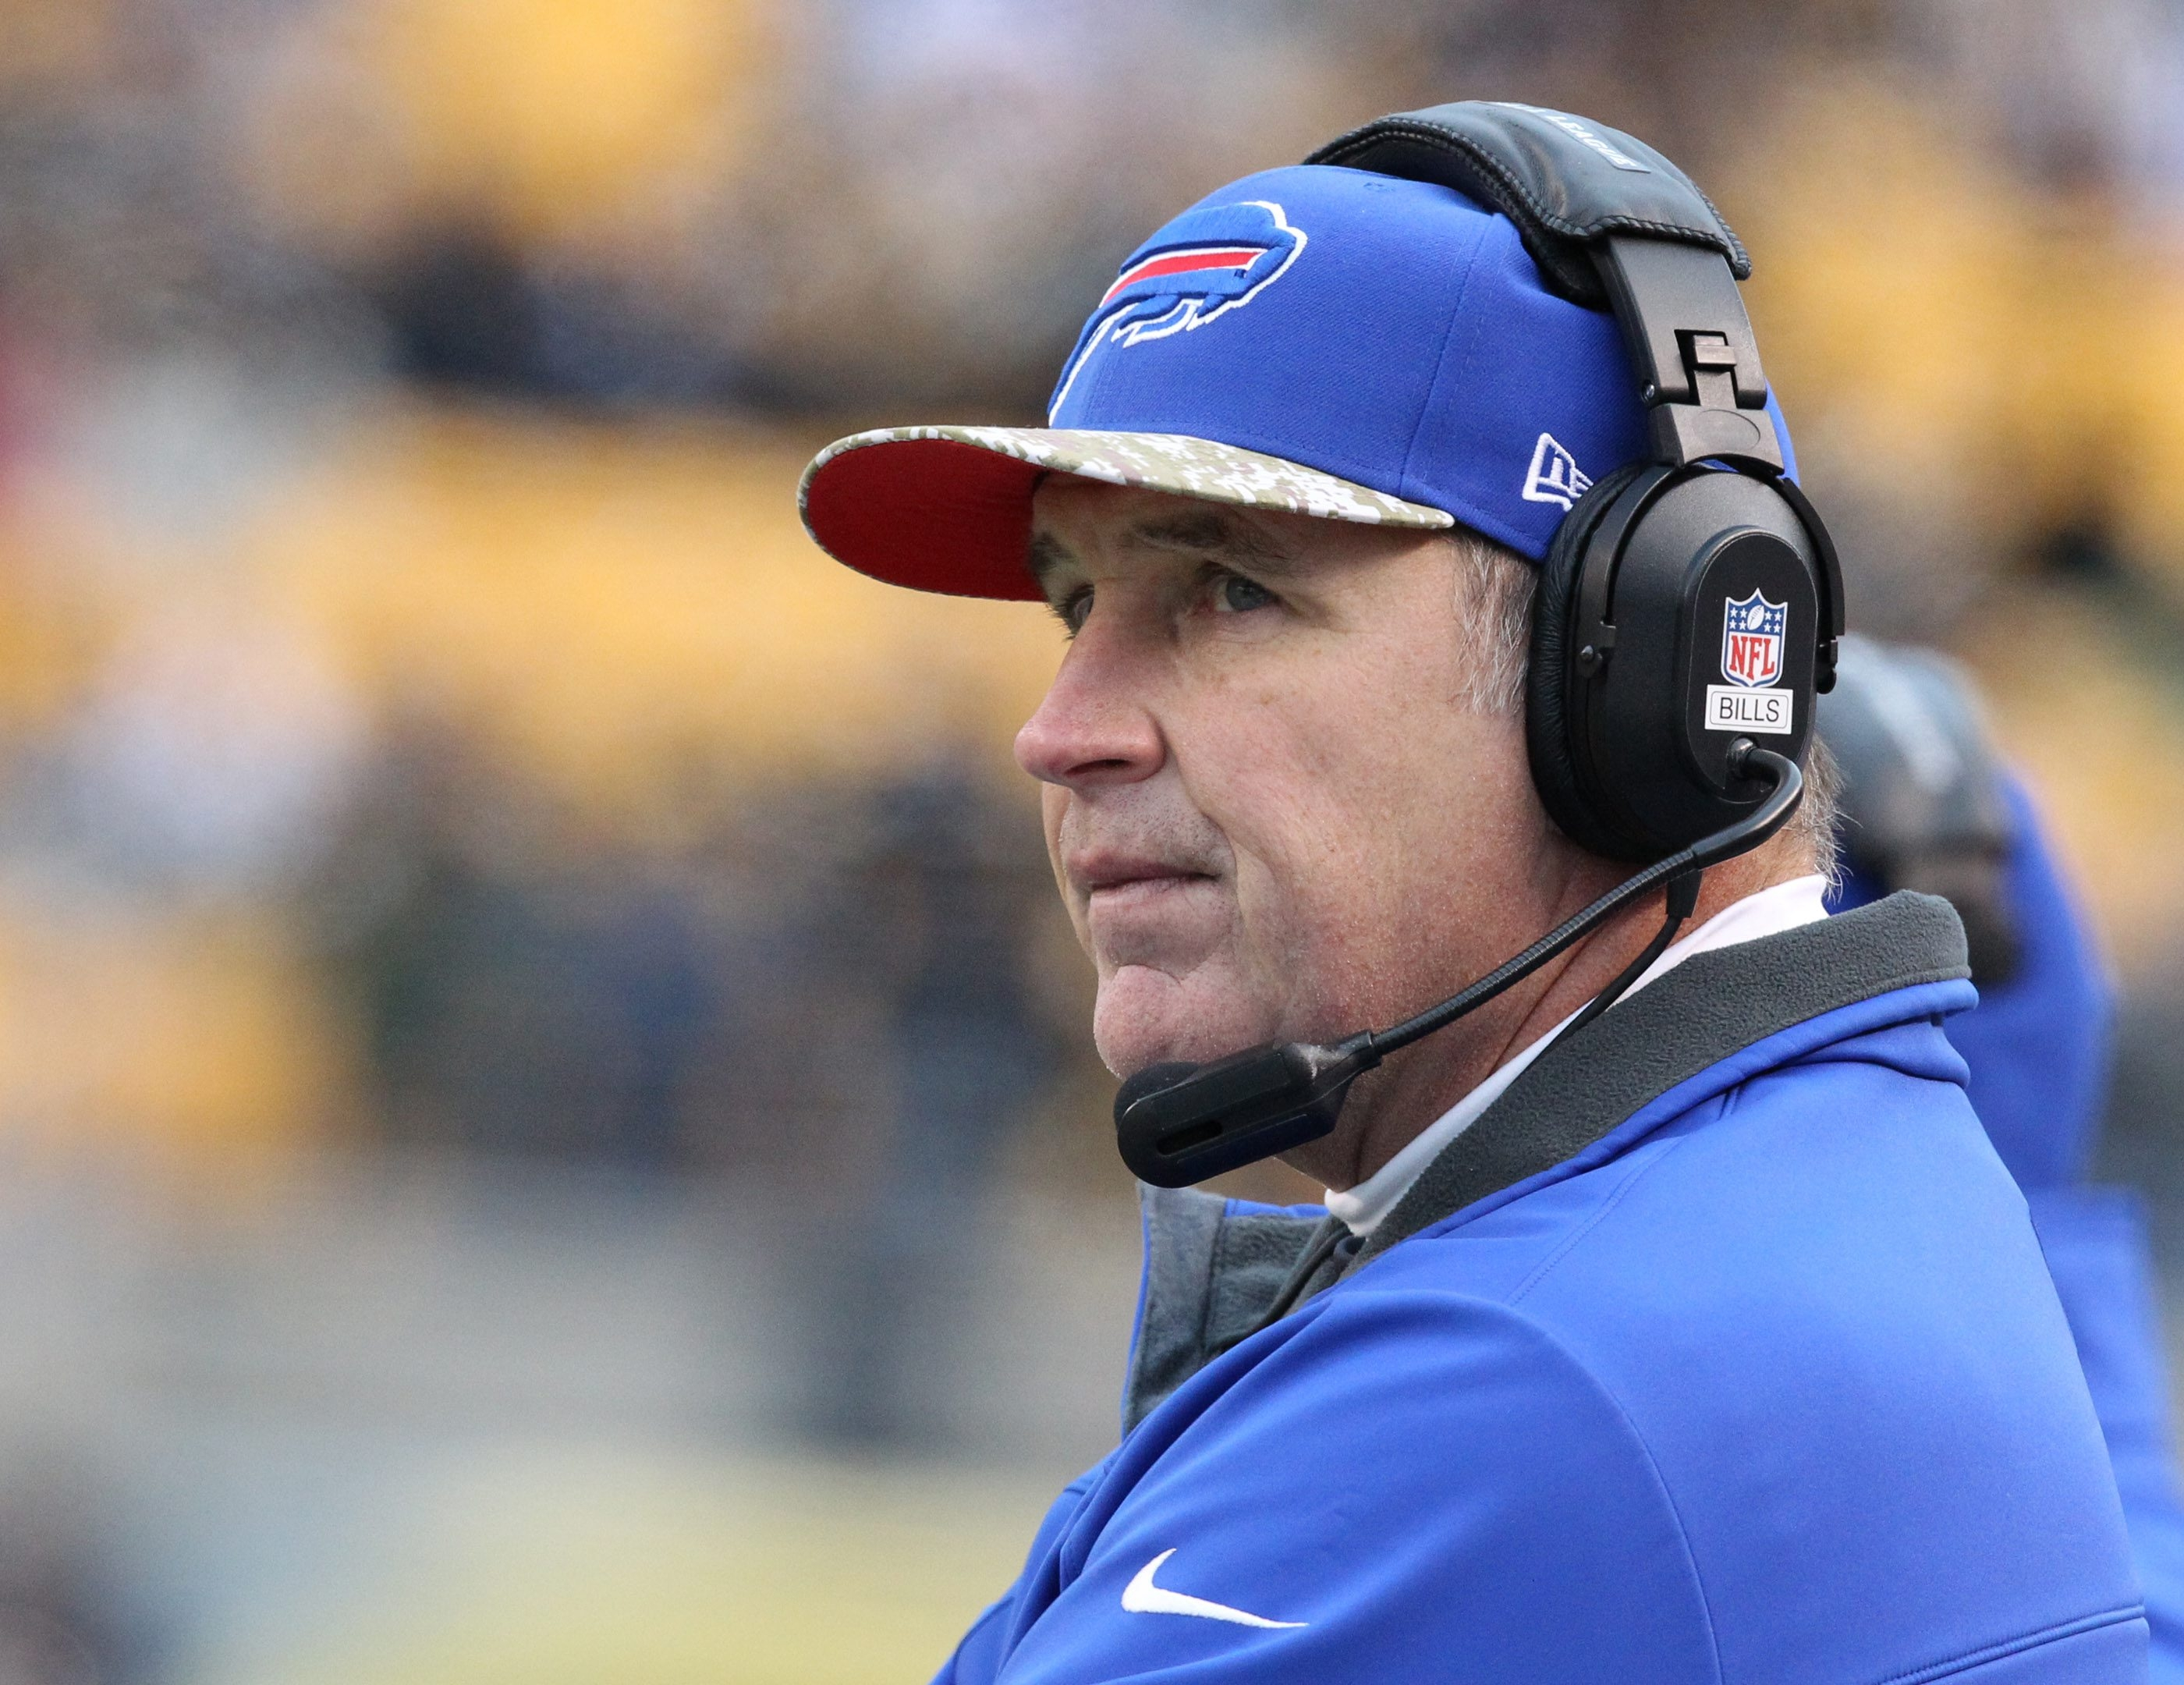 Buffalo Bills head coach Doug Marrone says removal of his cancerous mole won't affect his job. (James P. McCoy / Buffalo News file photo)